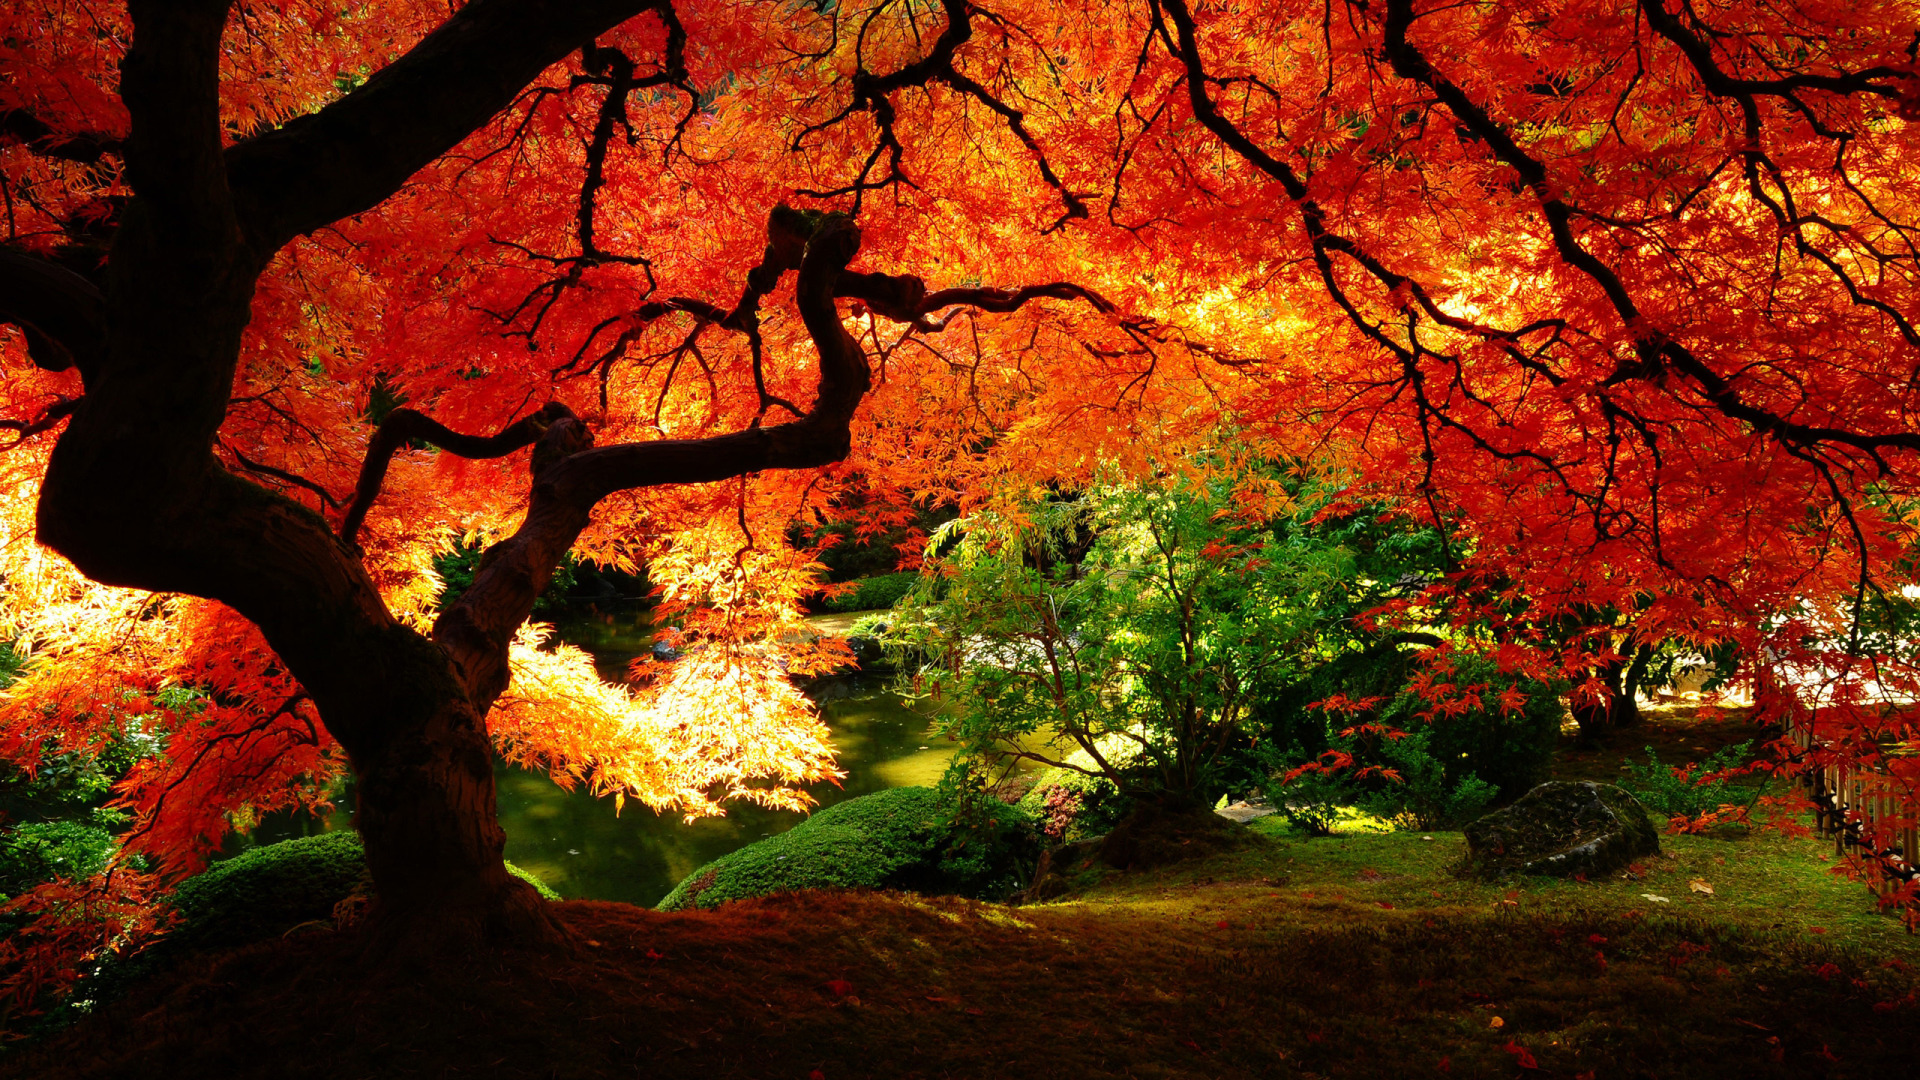 Scenary Wallpaper 82 Fall Scenery Wallpapers Wallpaper Cave 64 Fall Scenery